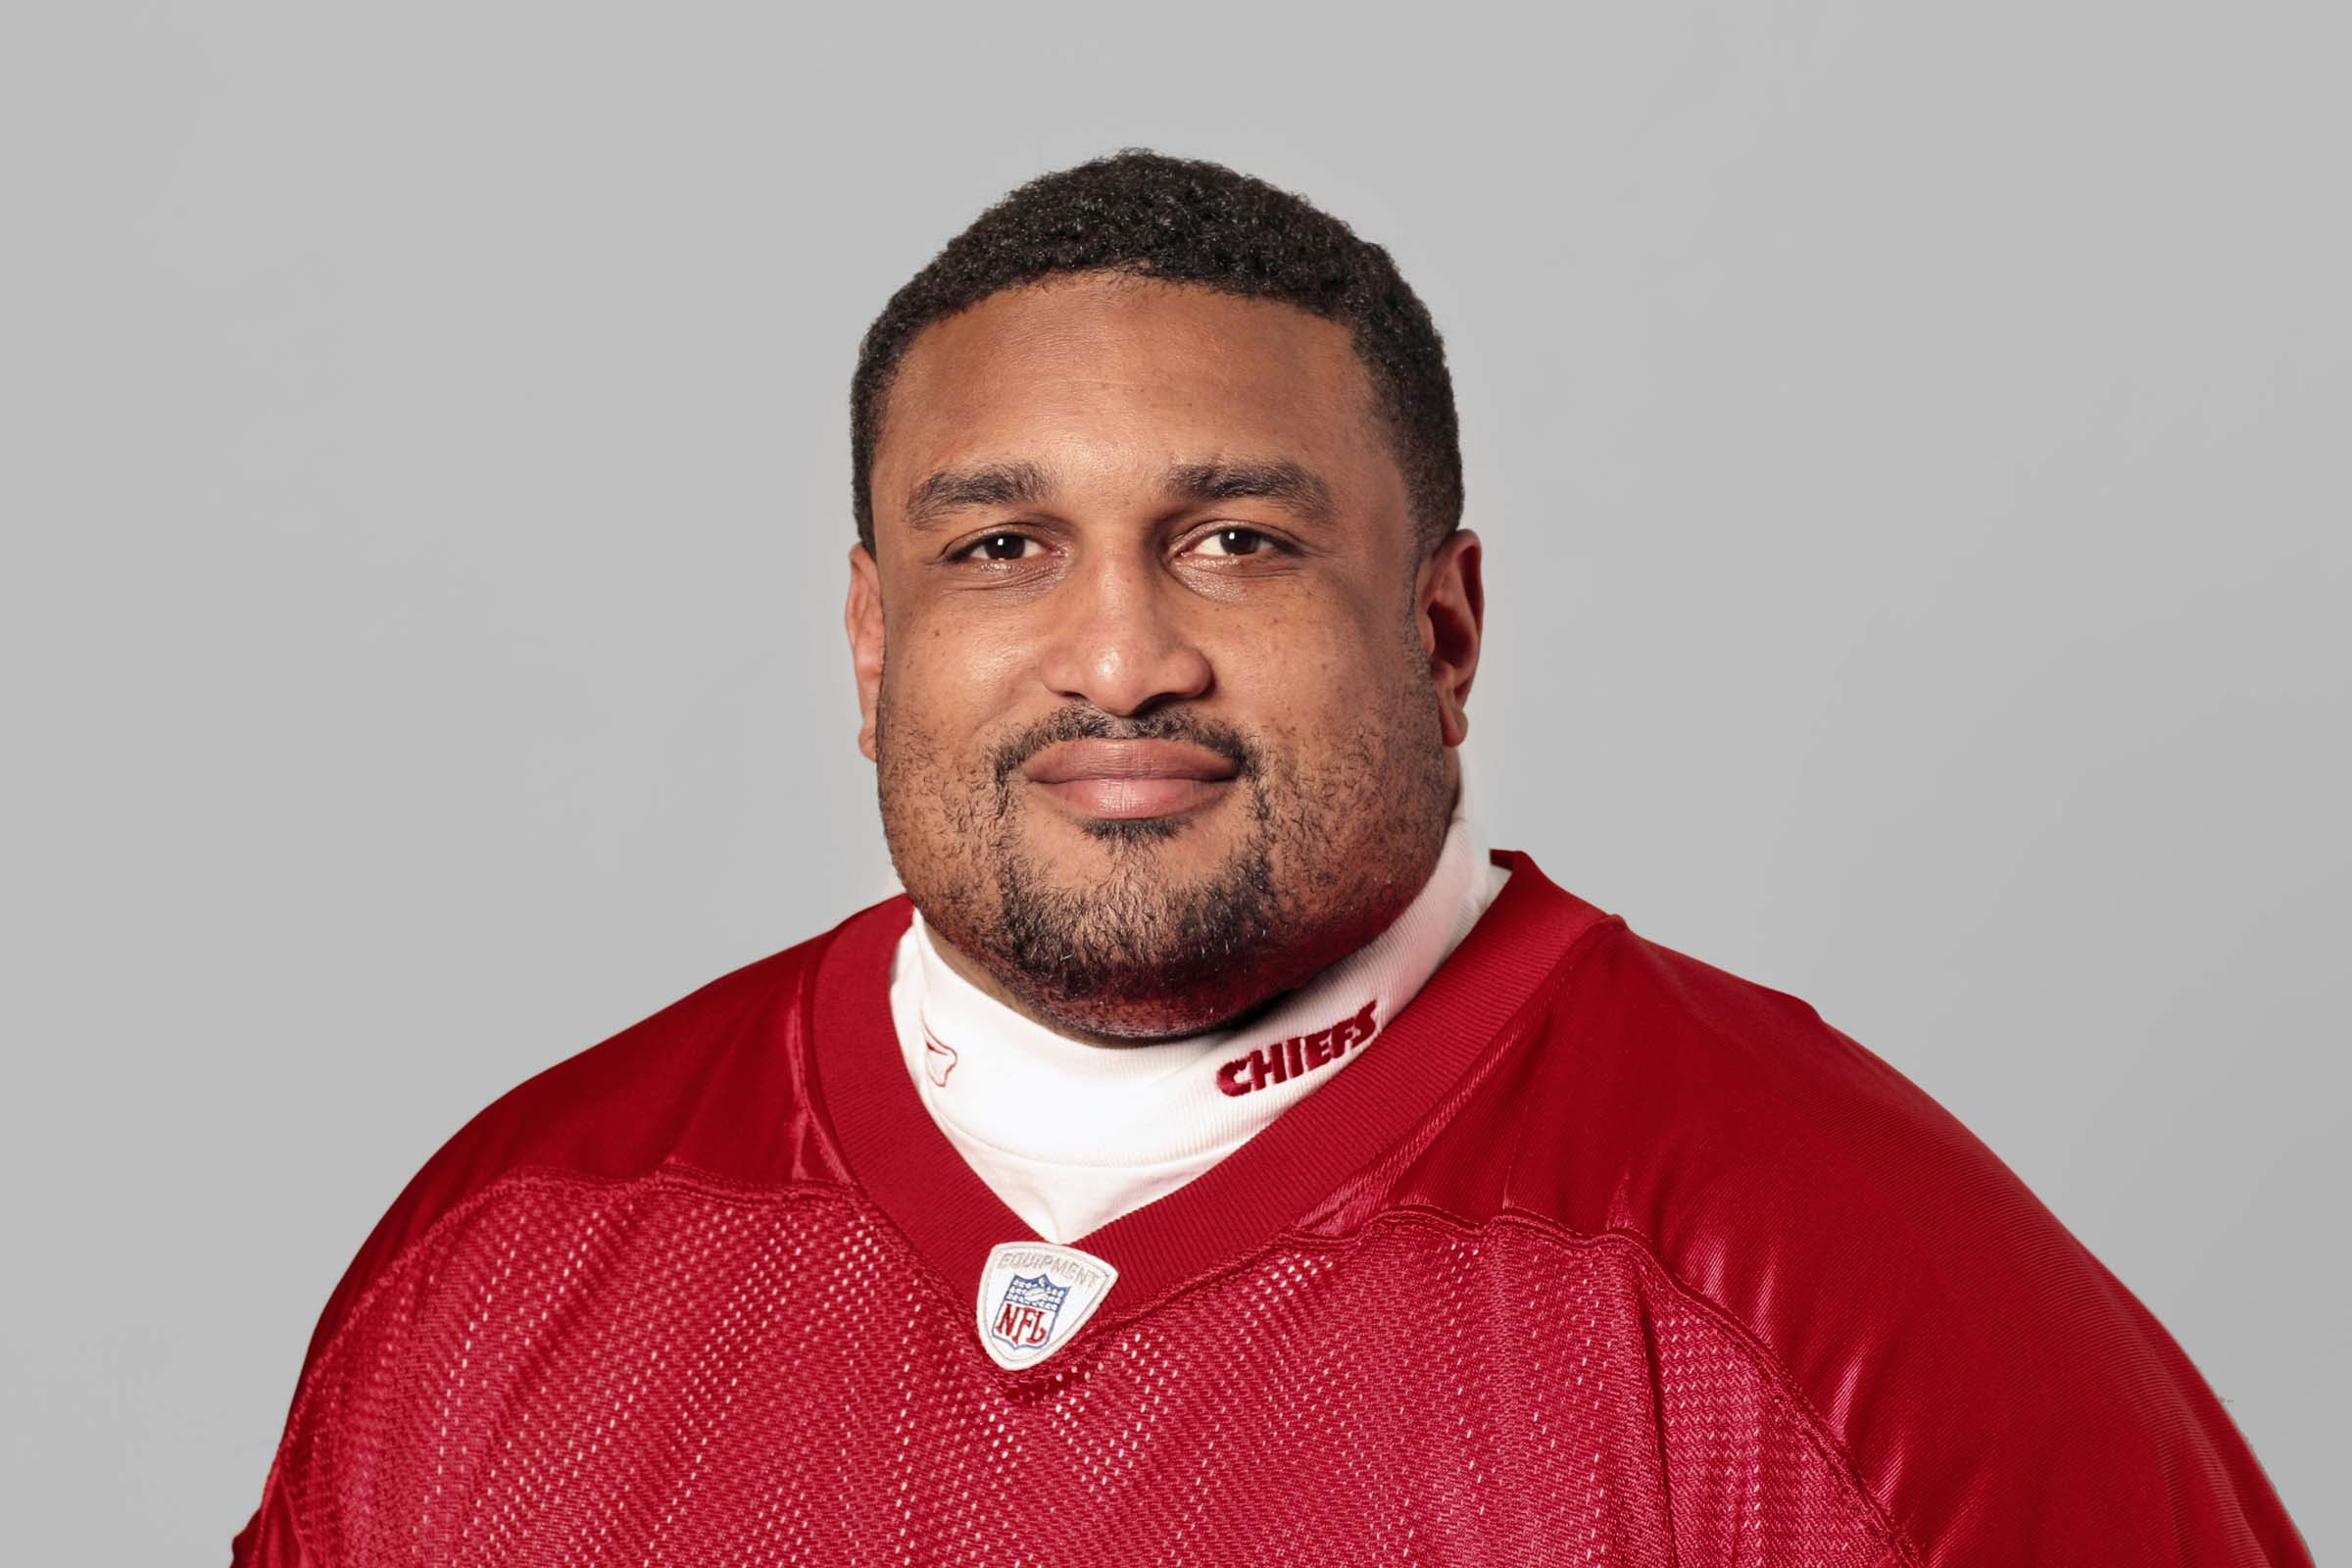 71374620-kansas-city-chiefs-2006-headshots.jpg